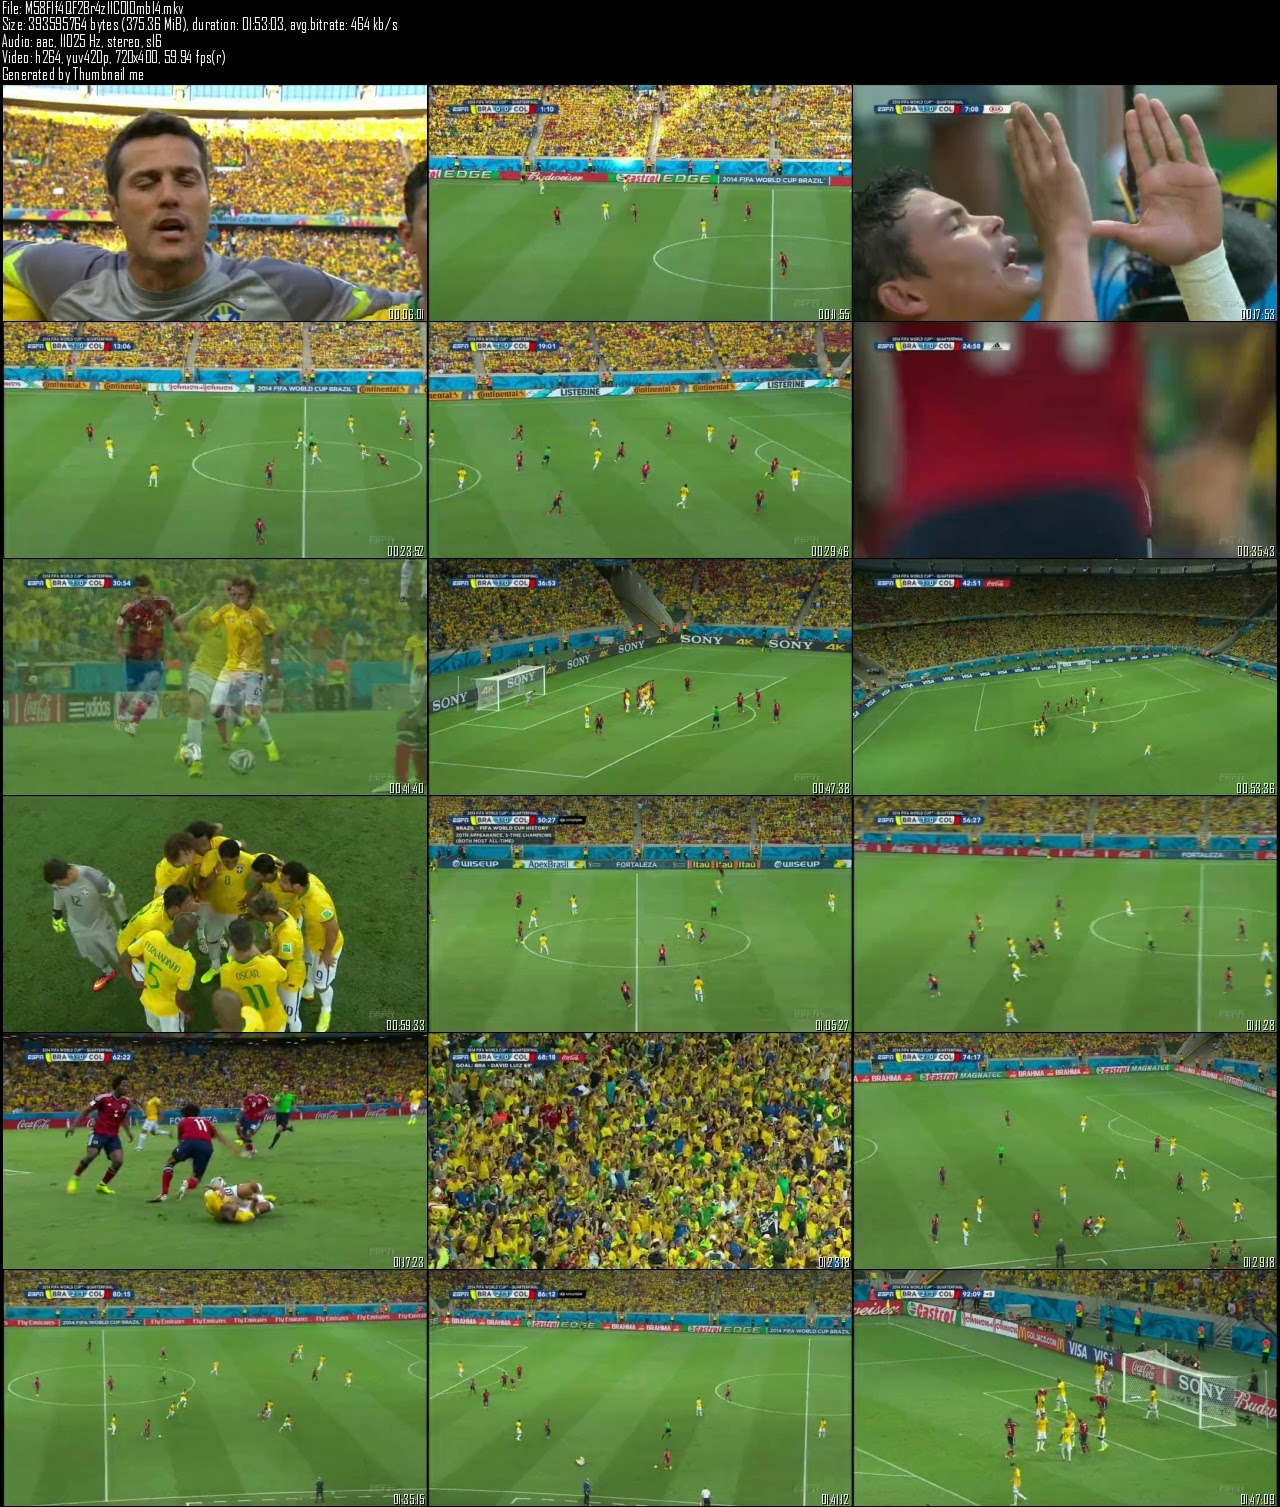 Fifa World Cup (2014) Brazil vs Colombia Quarter Final-2